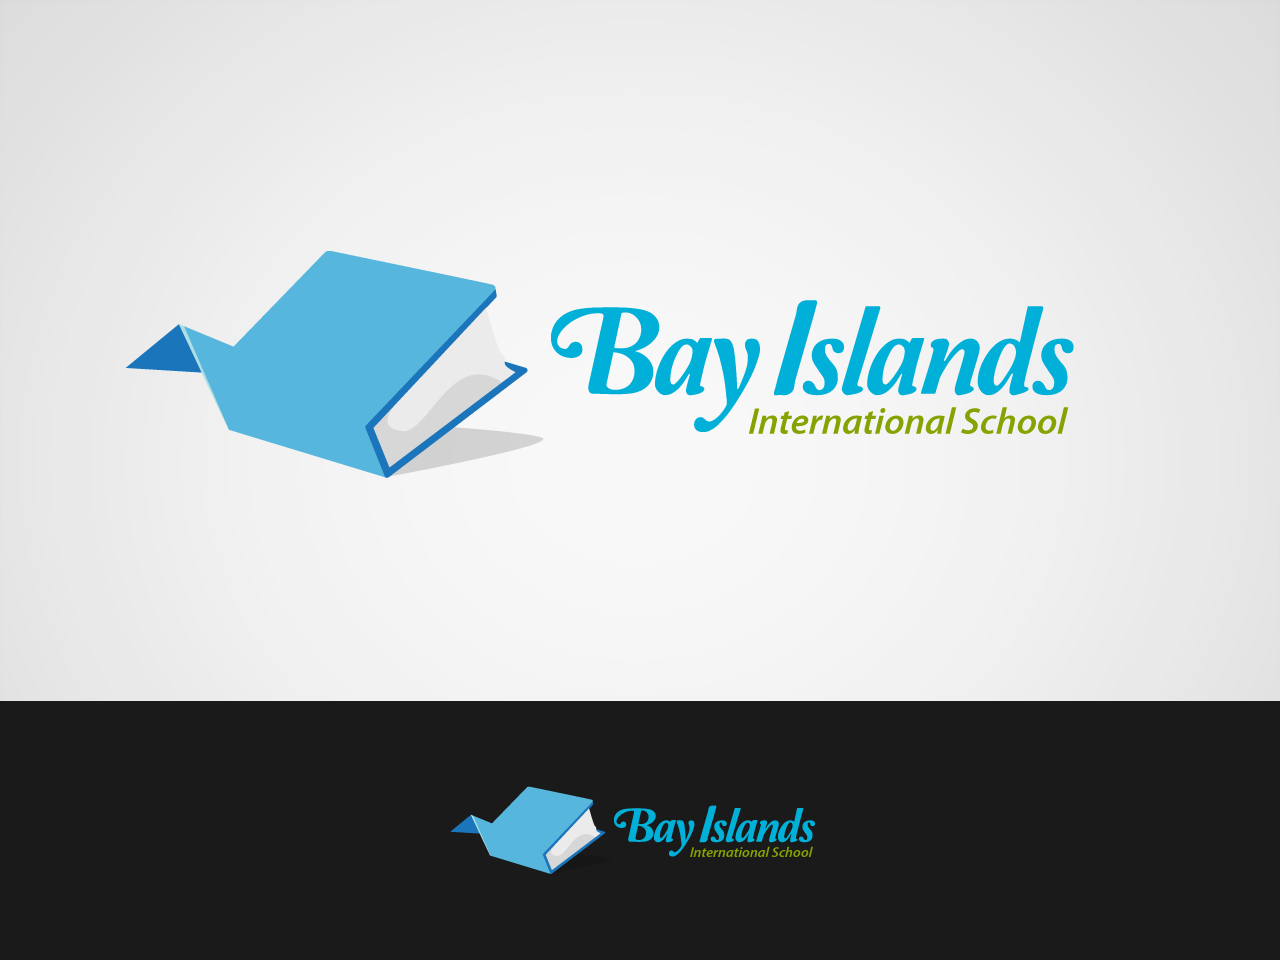 Logo Design by jpbituin - Entry No. 29 in the Logo Design Contest Creative Logo Design for Bay Islands International School.